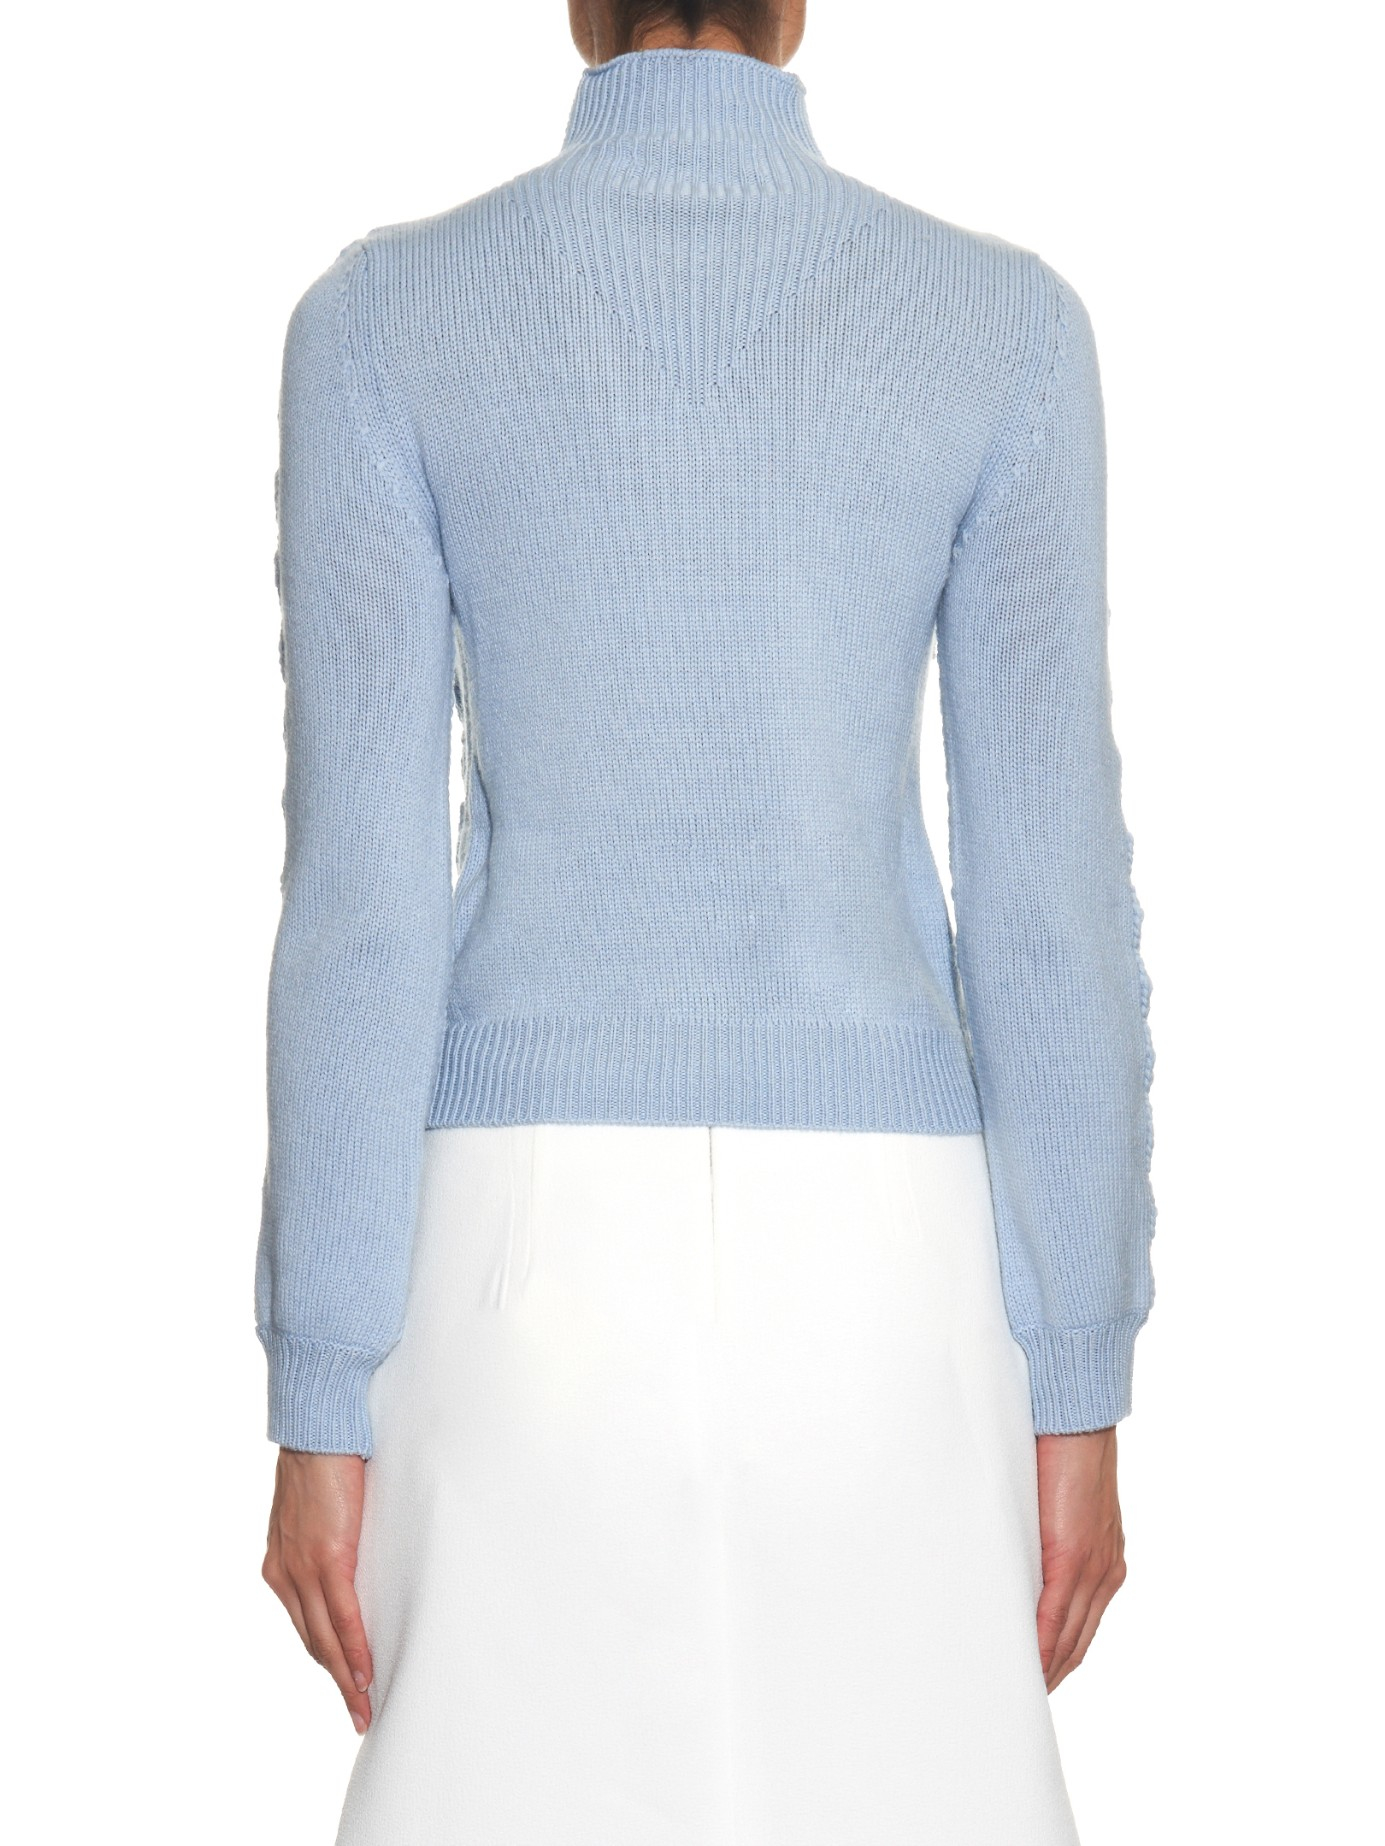 Altuzarra Harper Chunky-knit Wool Sweater in Blue | Lyst